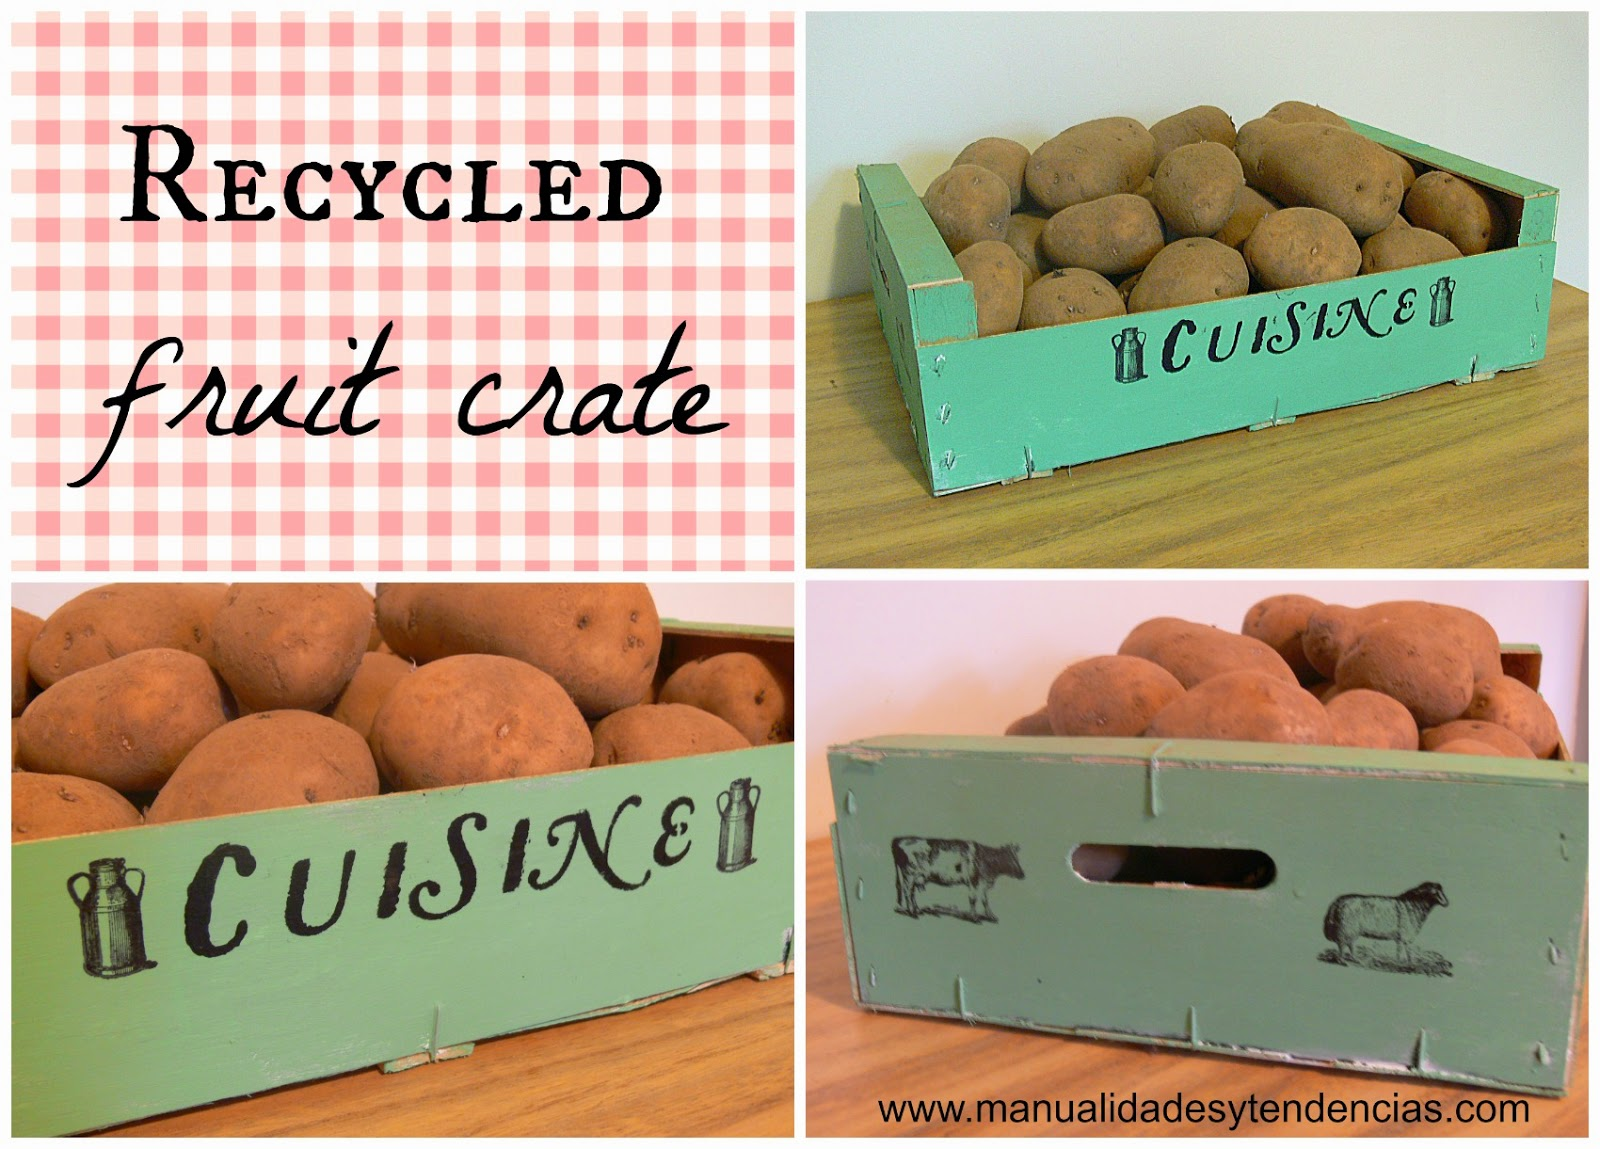 Recycled fruit crate